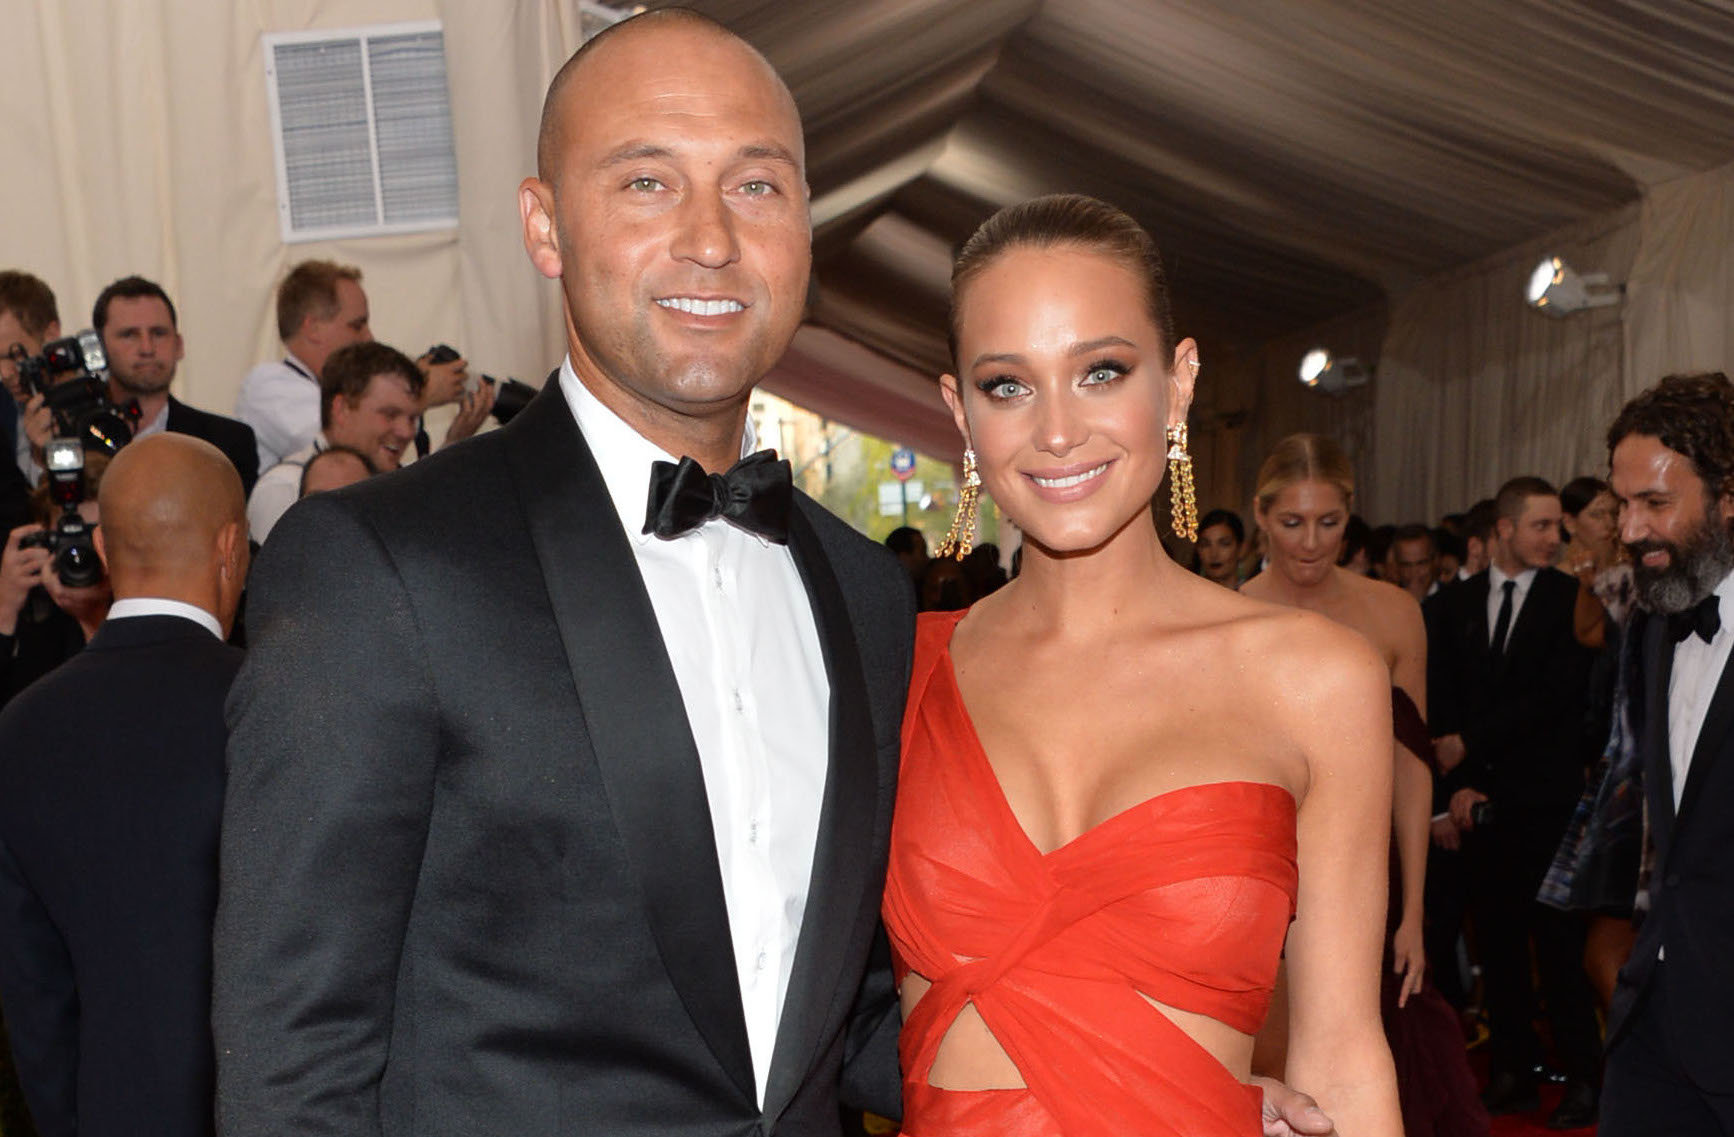 Hannah Davis and Derek Jeter getting married and are happy to be called as husband and wife